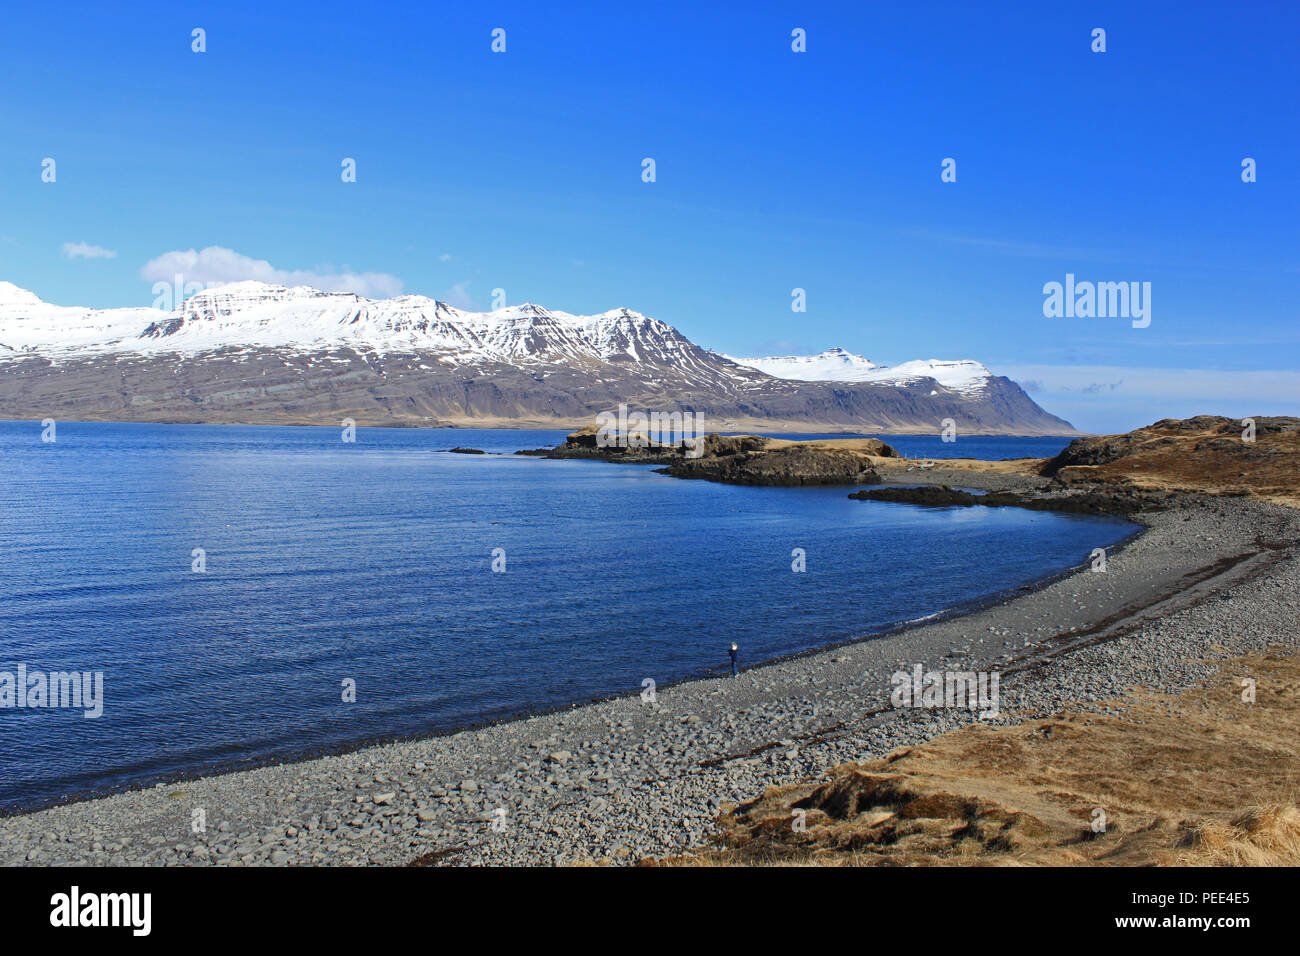 Picnic spot in East Fjords. Iceland. - Stock Image